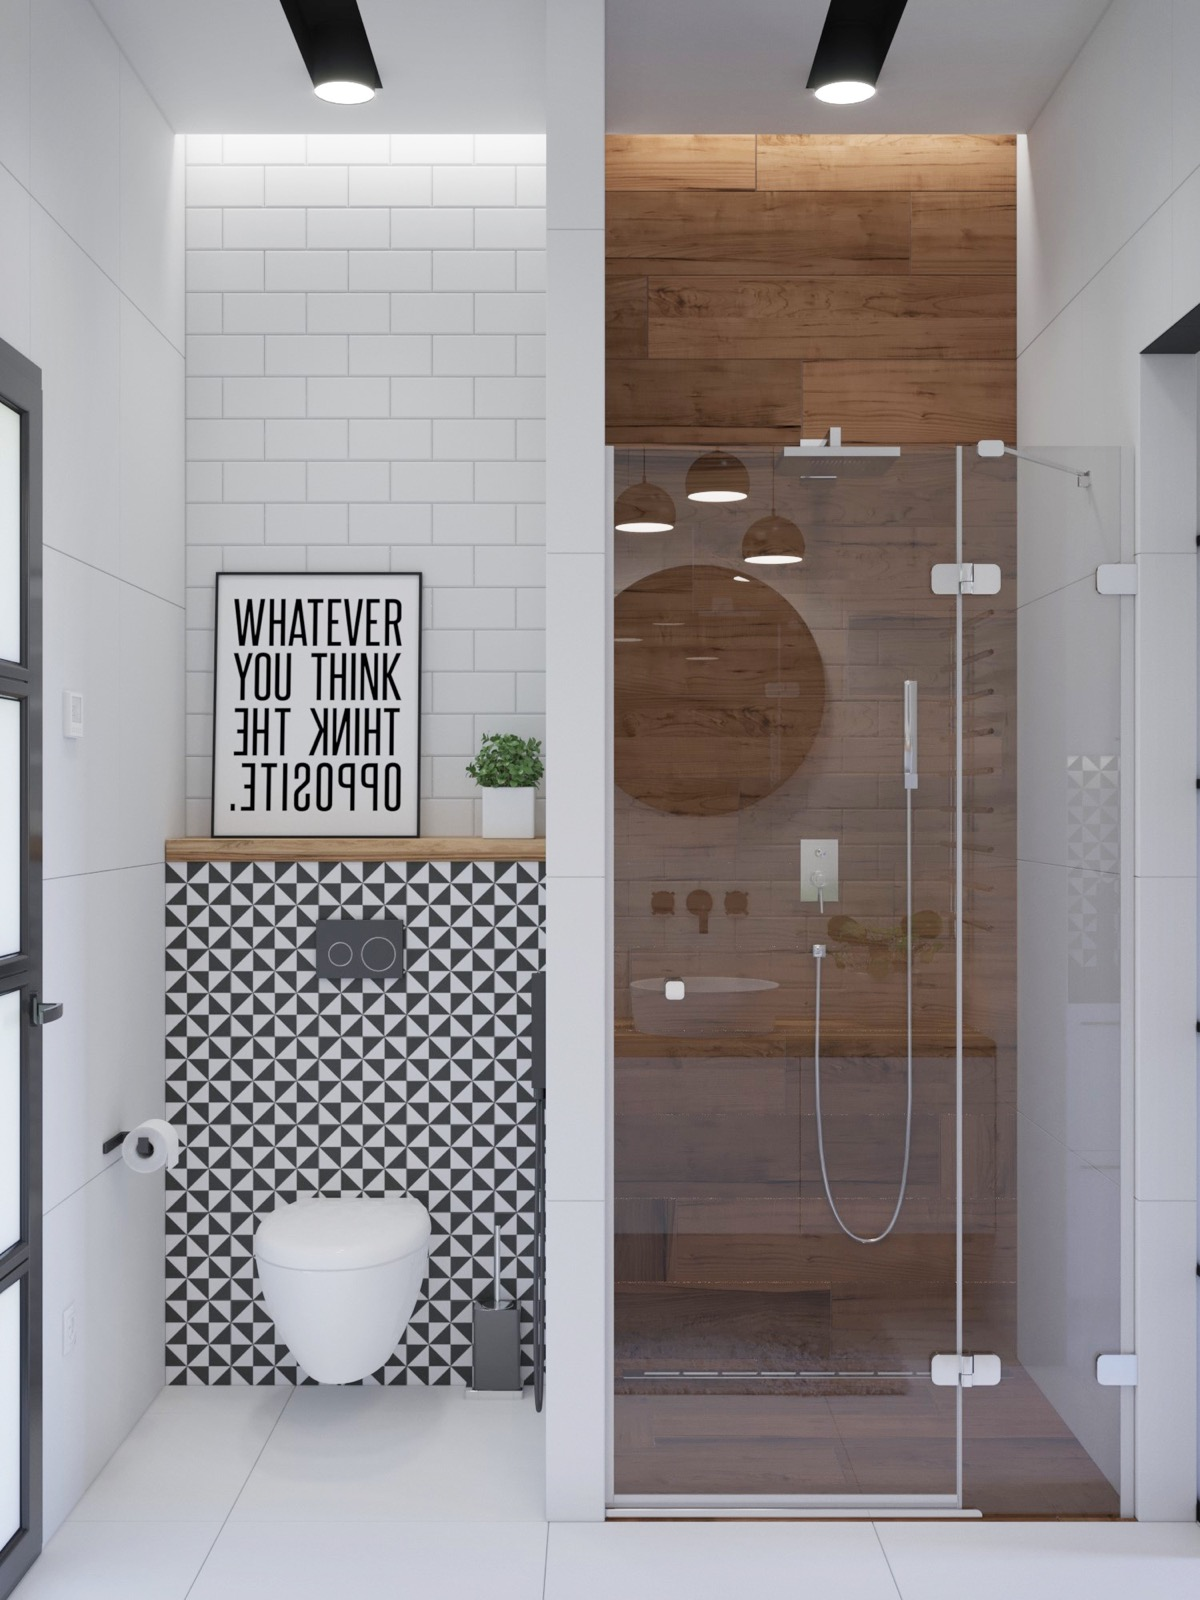 51 Modern Bathroom Design Ideas Plus Tips On How To ... on Modern Small Bathroom  id=51635